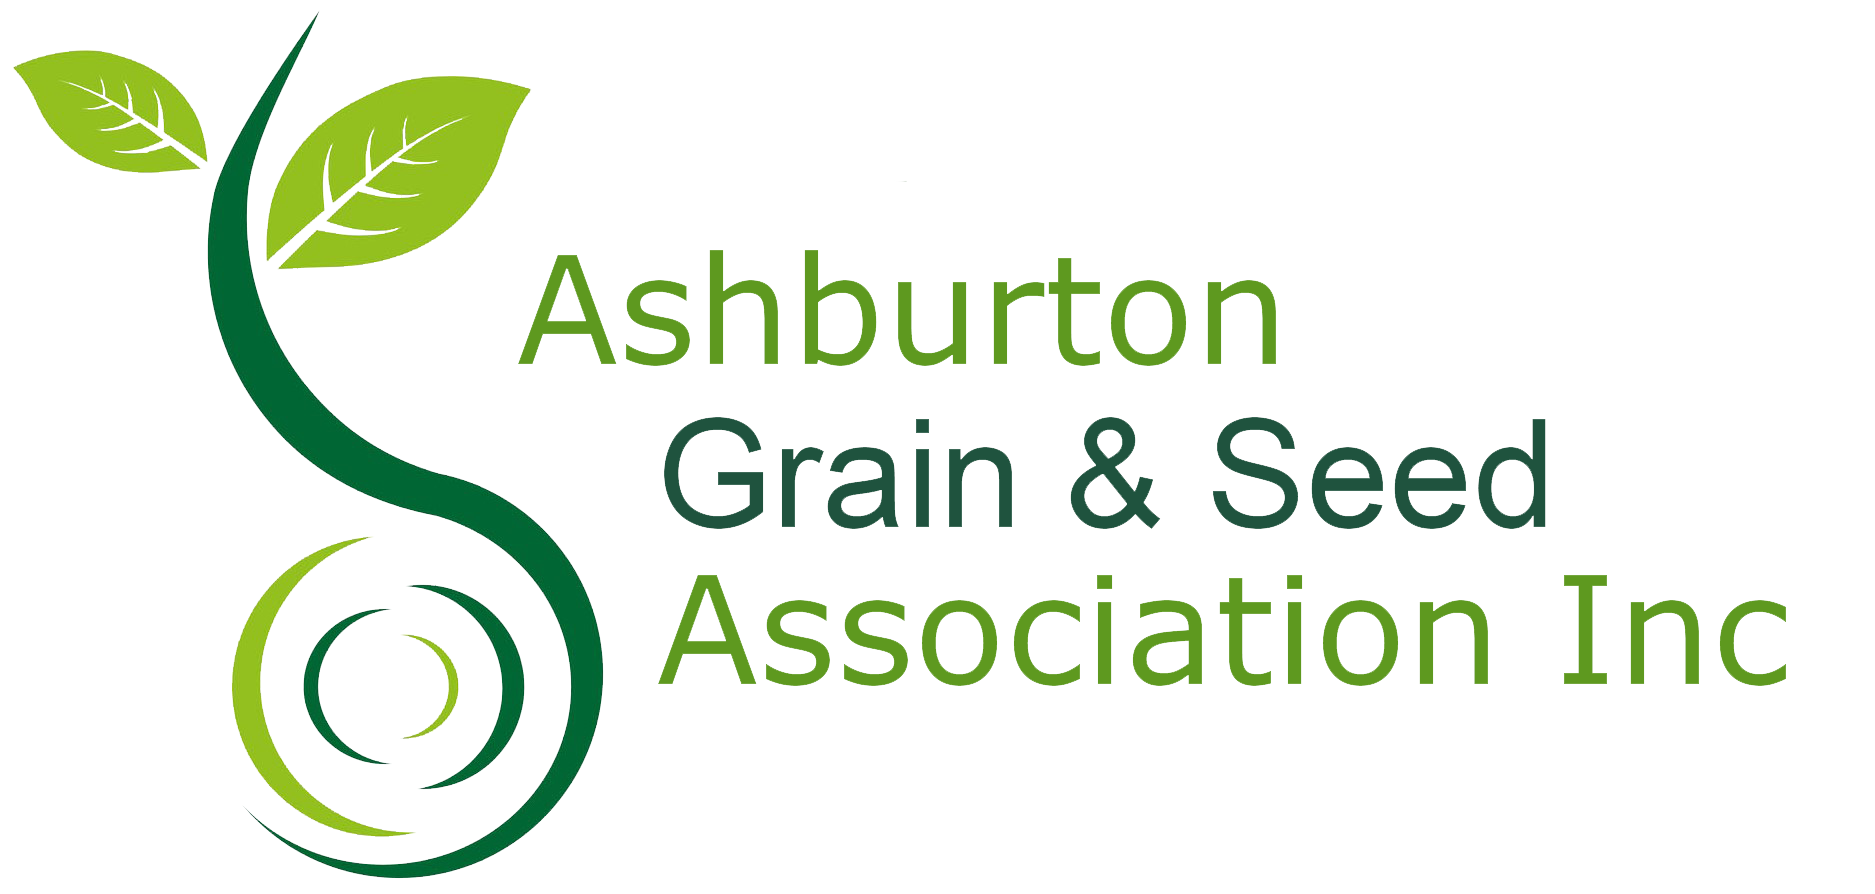 Ashburton Grain and Seed Association